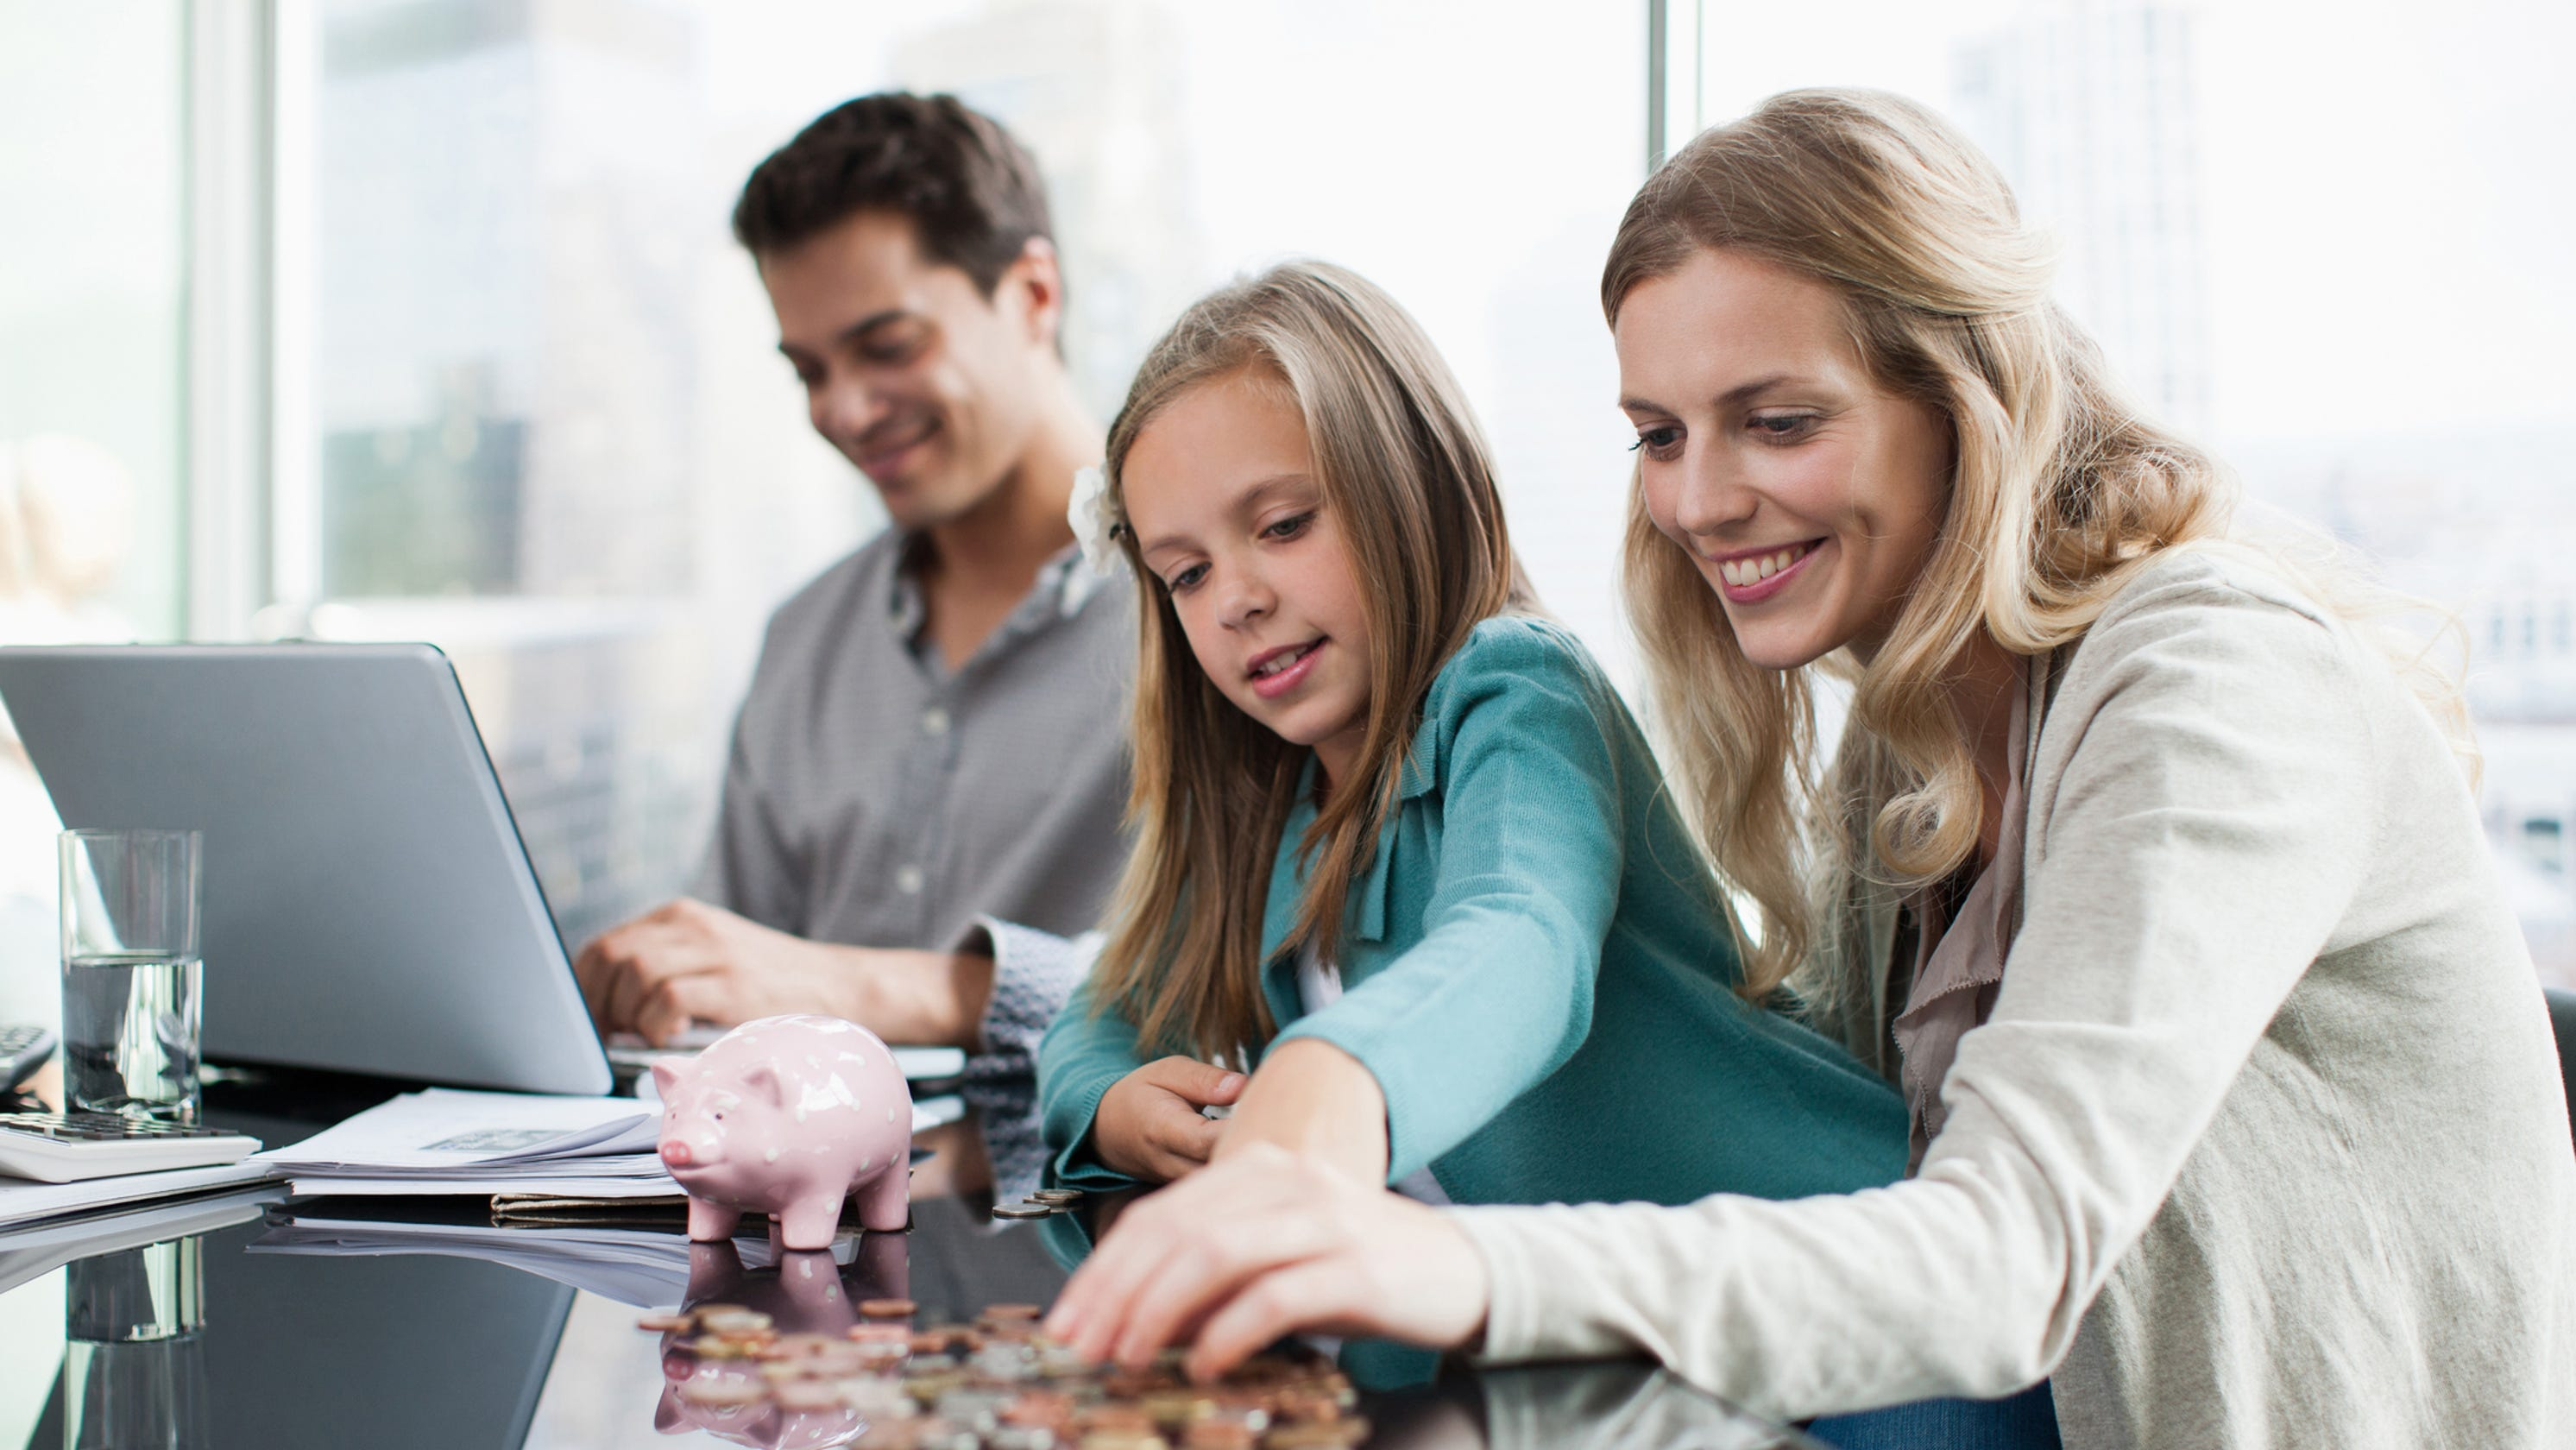 38% of parents are making this big savings mistake